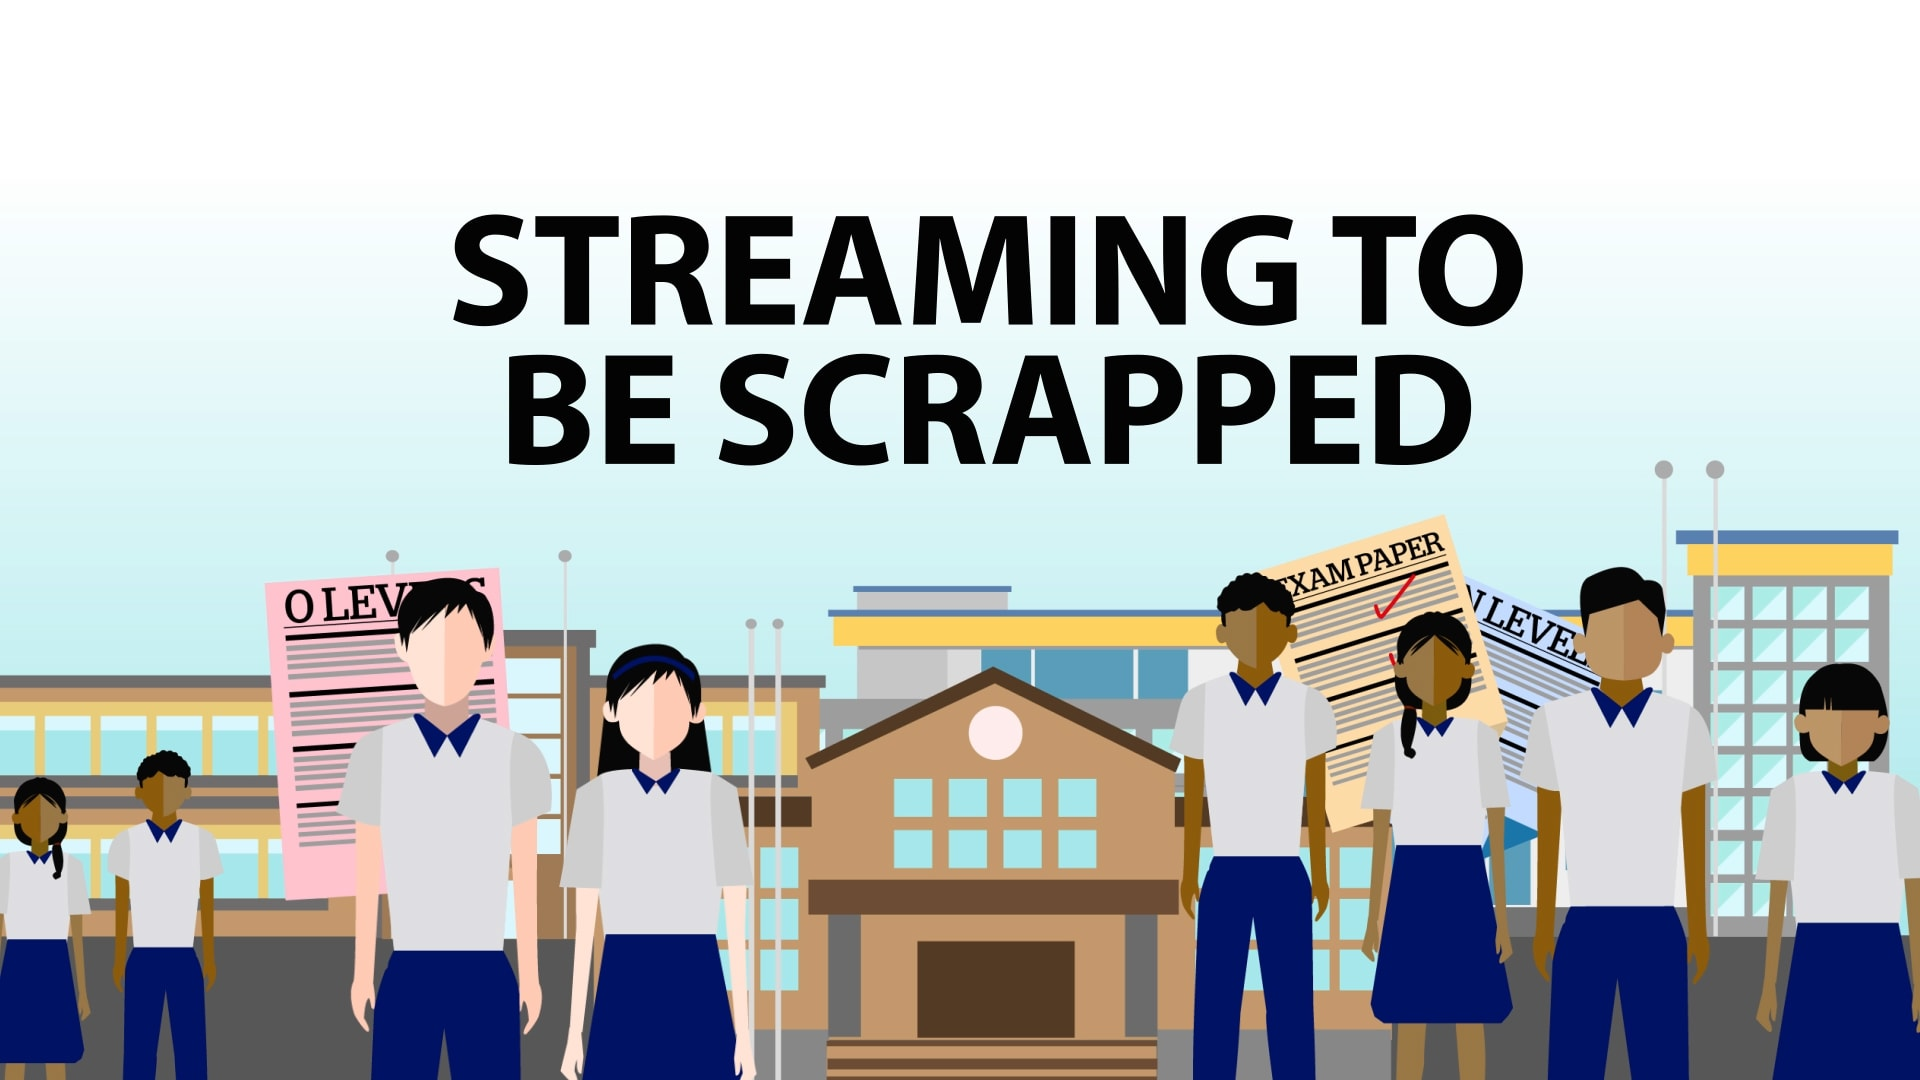 How secondary education will work in Singapore once current streaming system is phased out